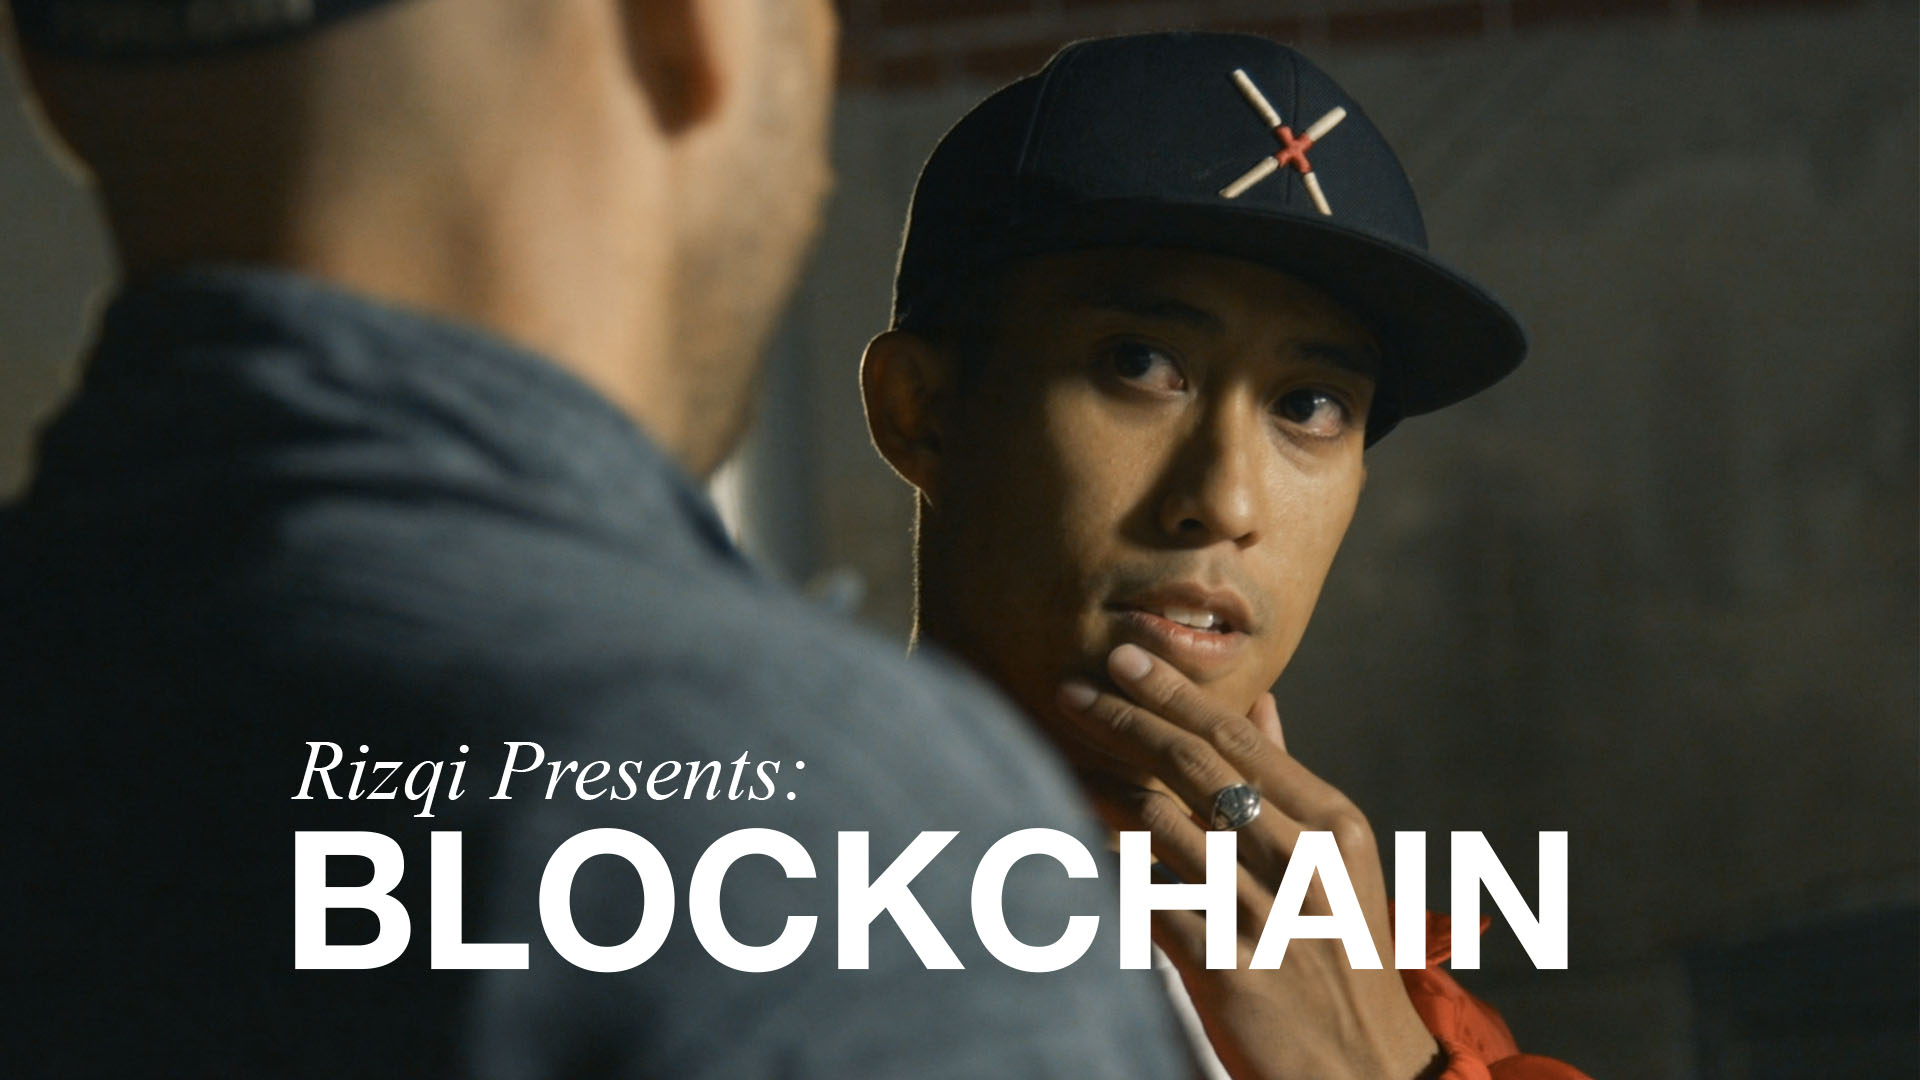 Rizqi Presents: Blockchain